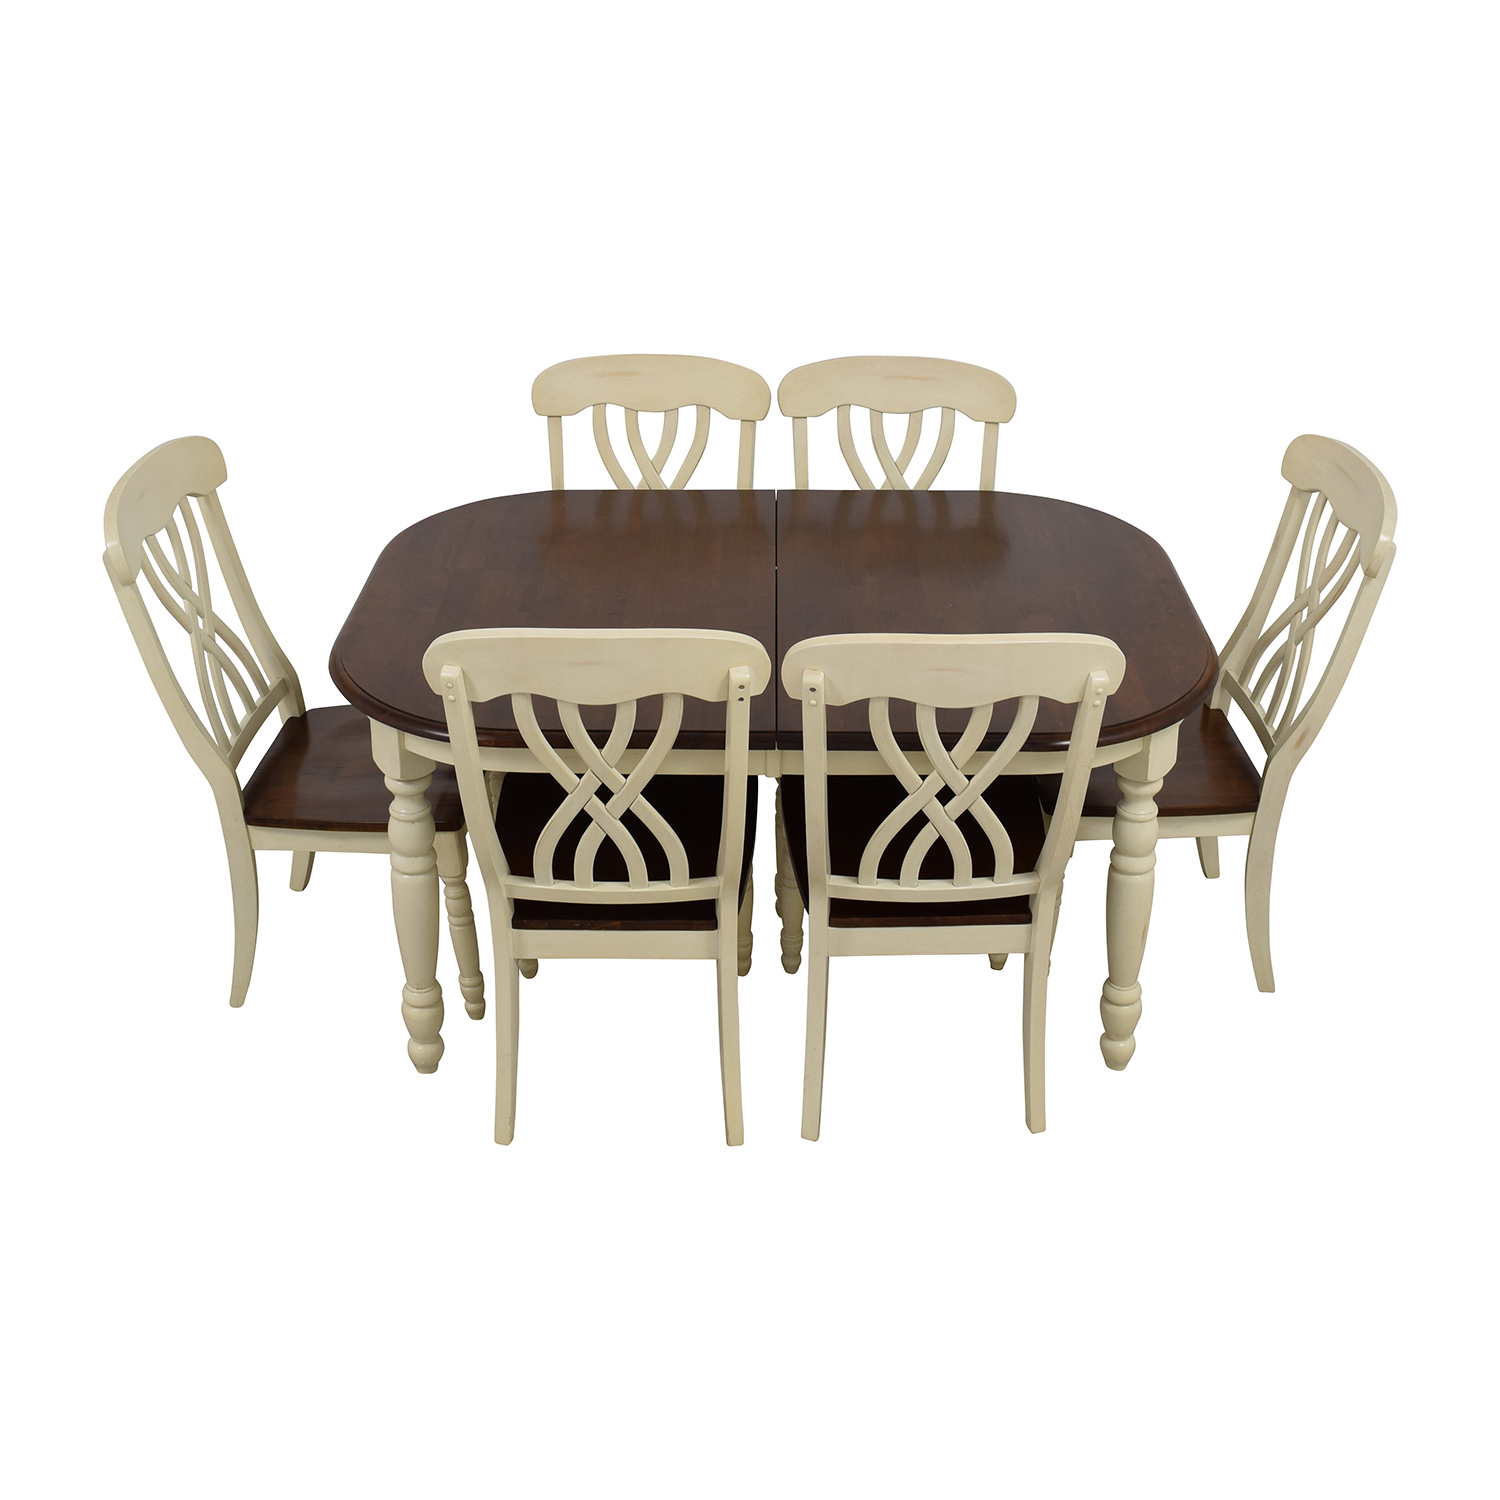 Extendable Wood Dining Table with Chairs Dining Sets